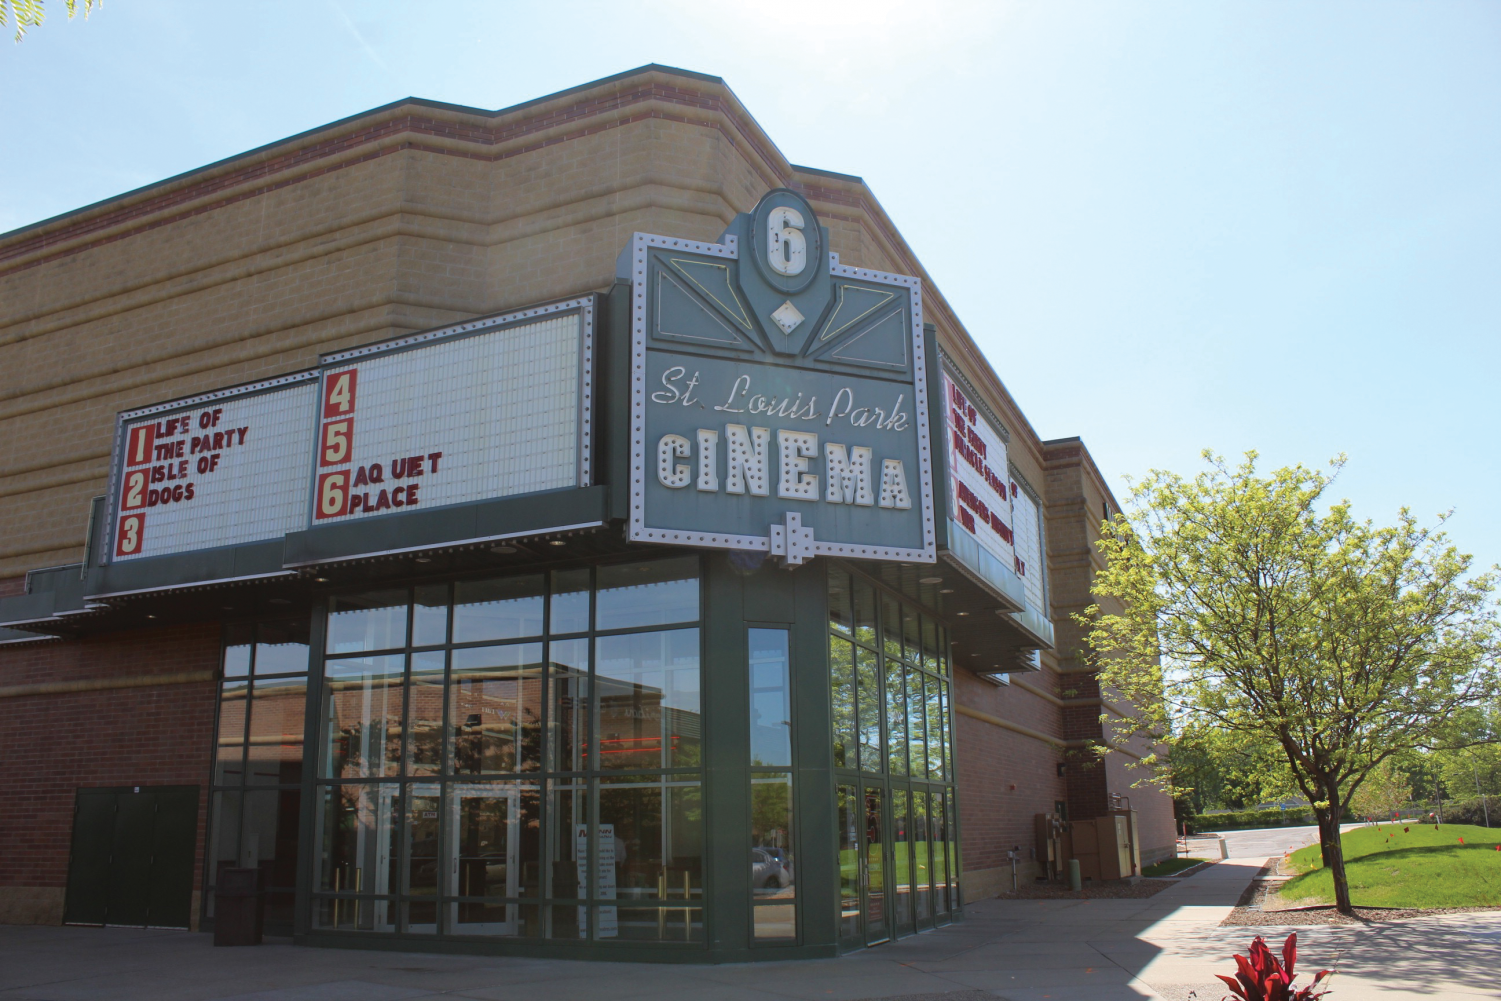 The Mann Cinema 6 located on Excelsior had their final showing on May 20. The building and surrounding buildings are going to be taken over by Park Nicollet.